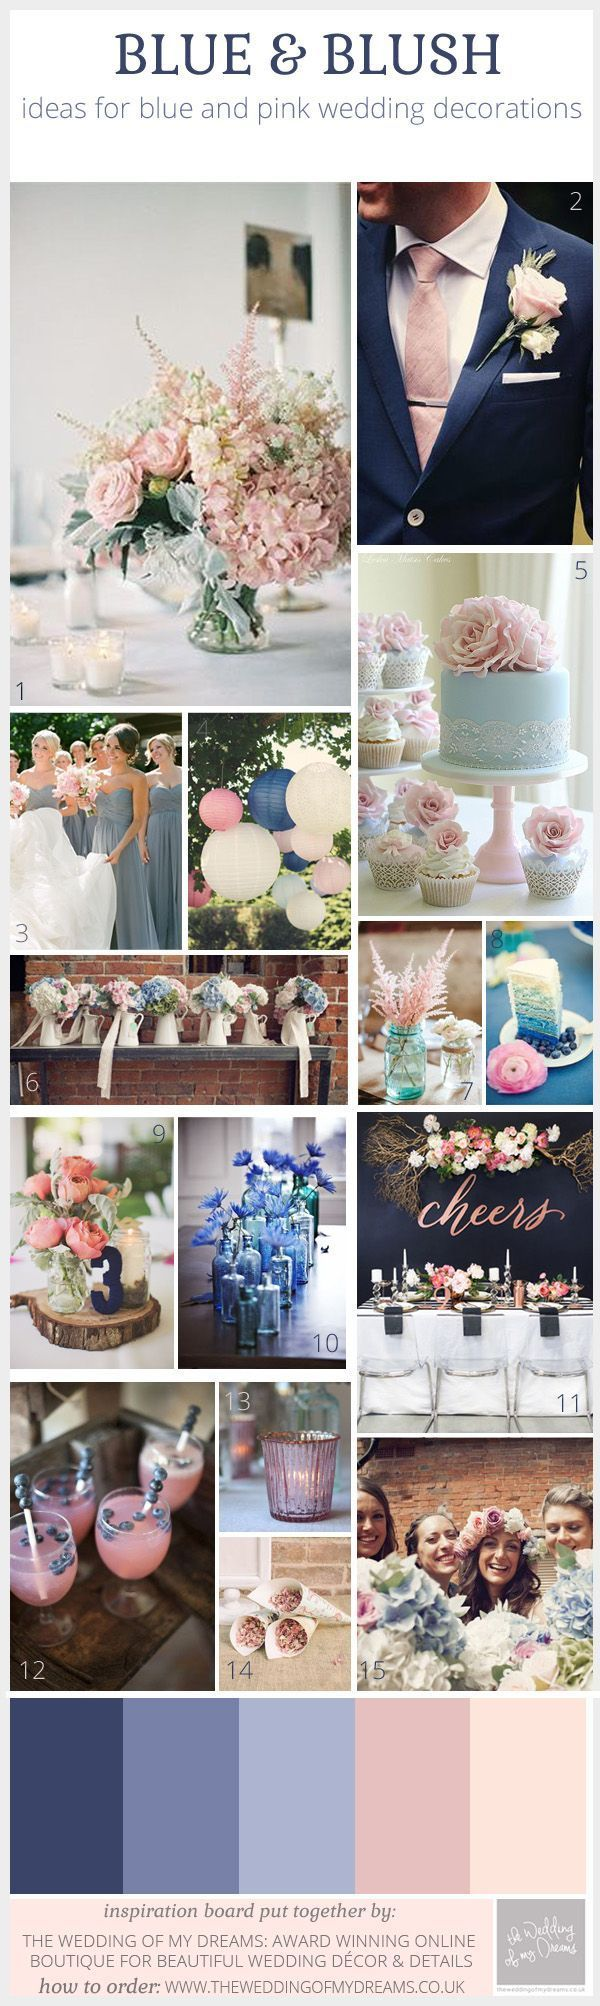 Blue And Blush Pink Wedding Decorations, 2016 wedding colors, blush wedding ideas